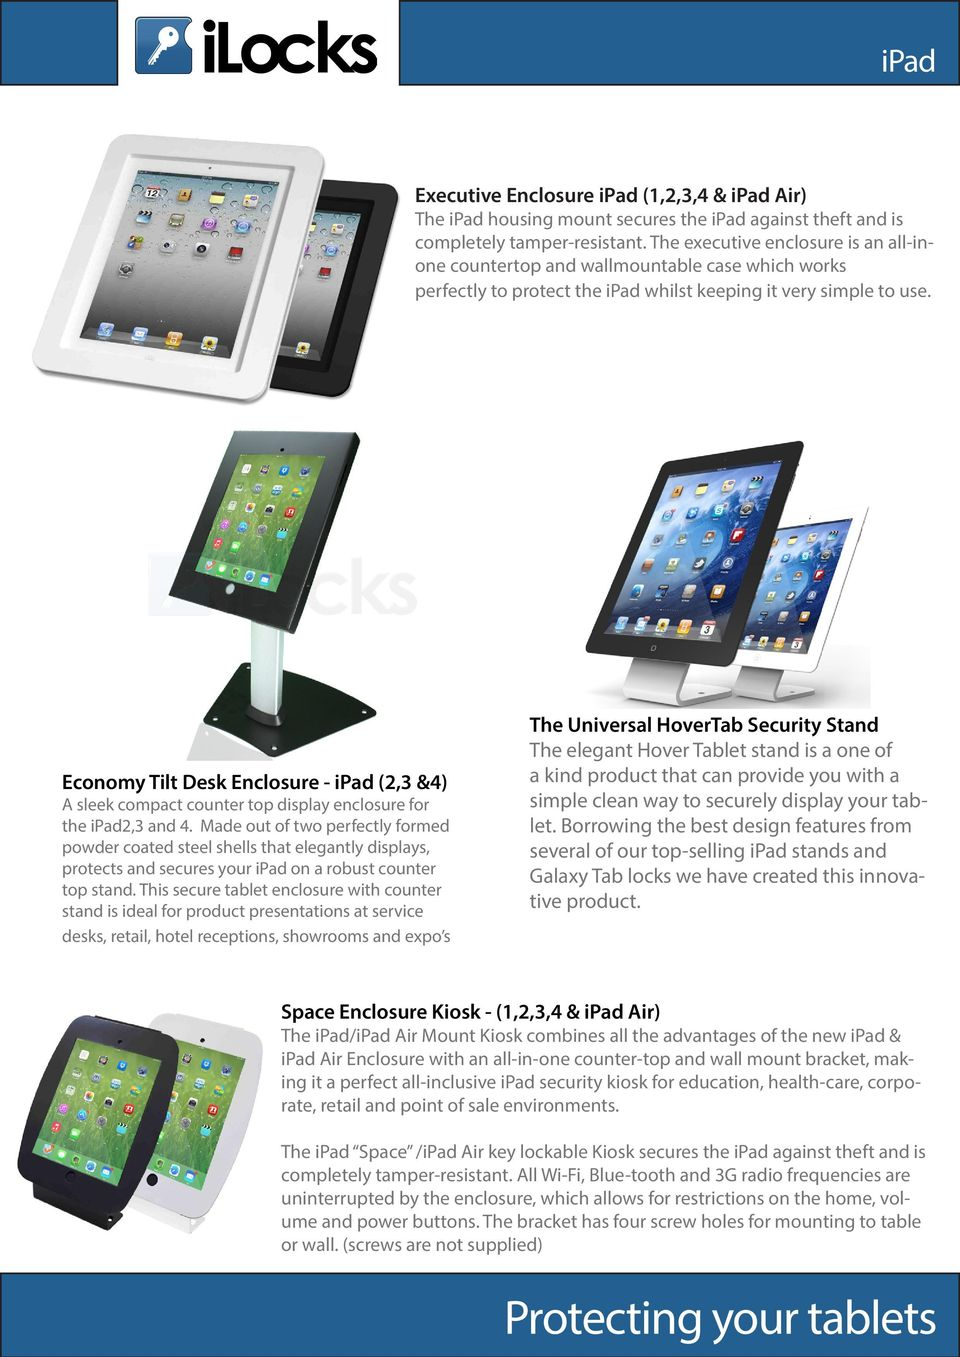 Leading The Way In Tablet Security Product Catalogue August Advan Itab 7 Inch New Economy Tilt Desk Enclosure Ipad 23 4 A Sleek Compact Counter